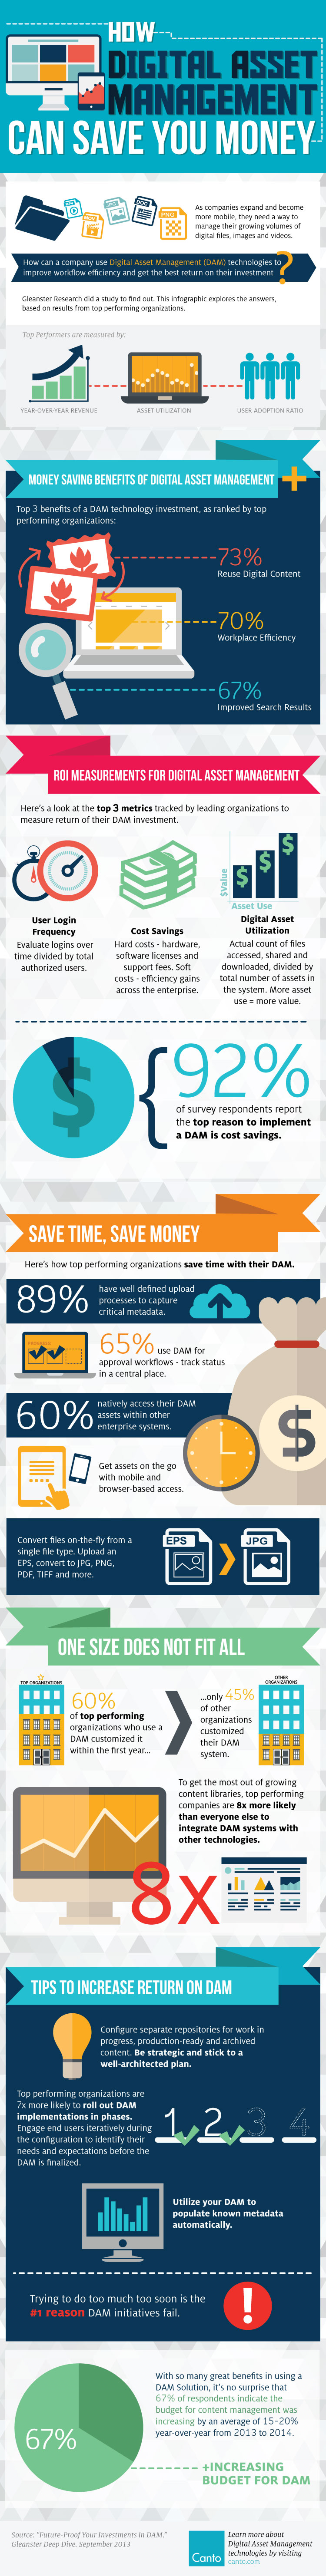 [Infographic] How Digital Asset Management Can Save You Money